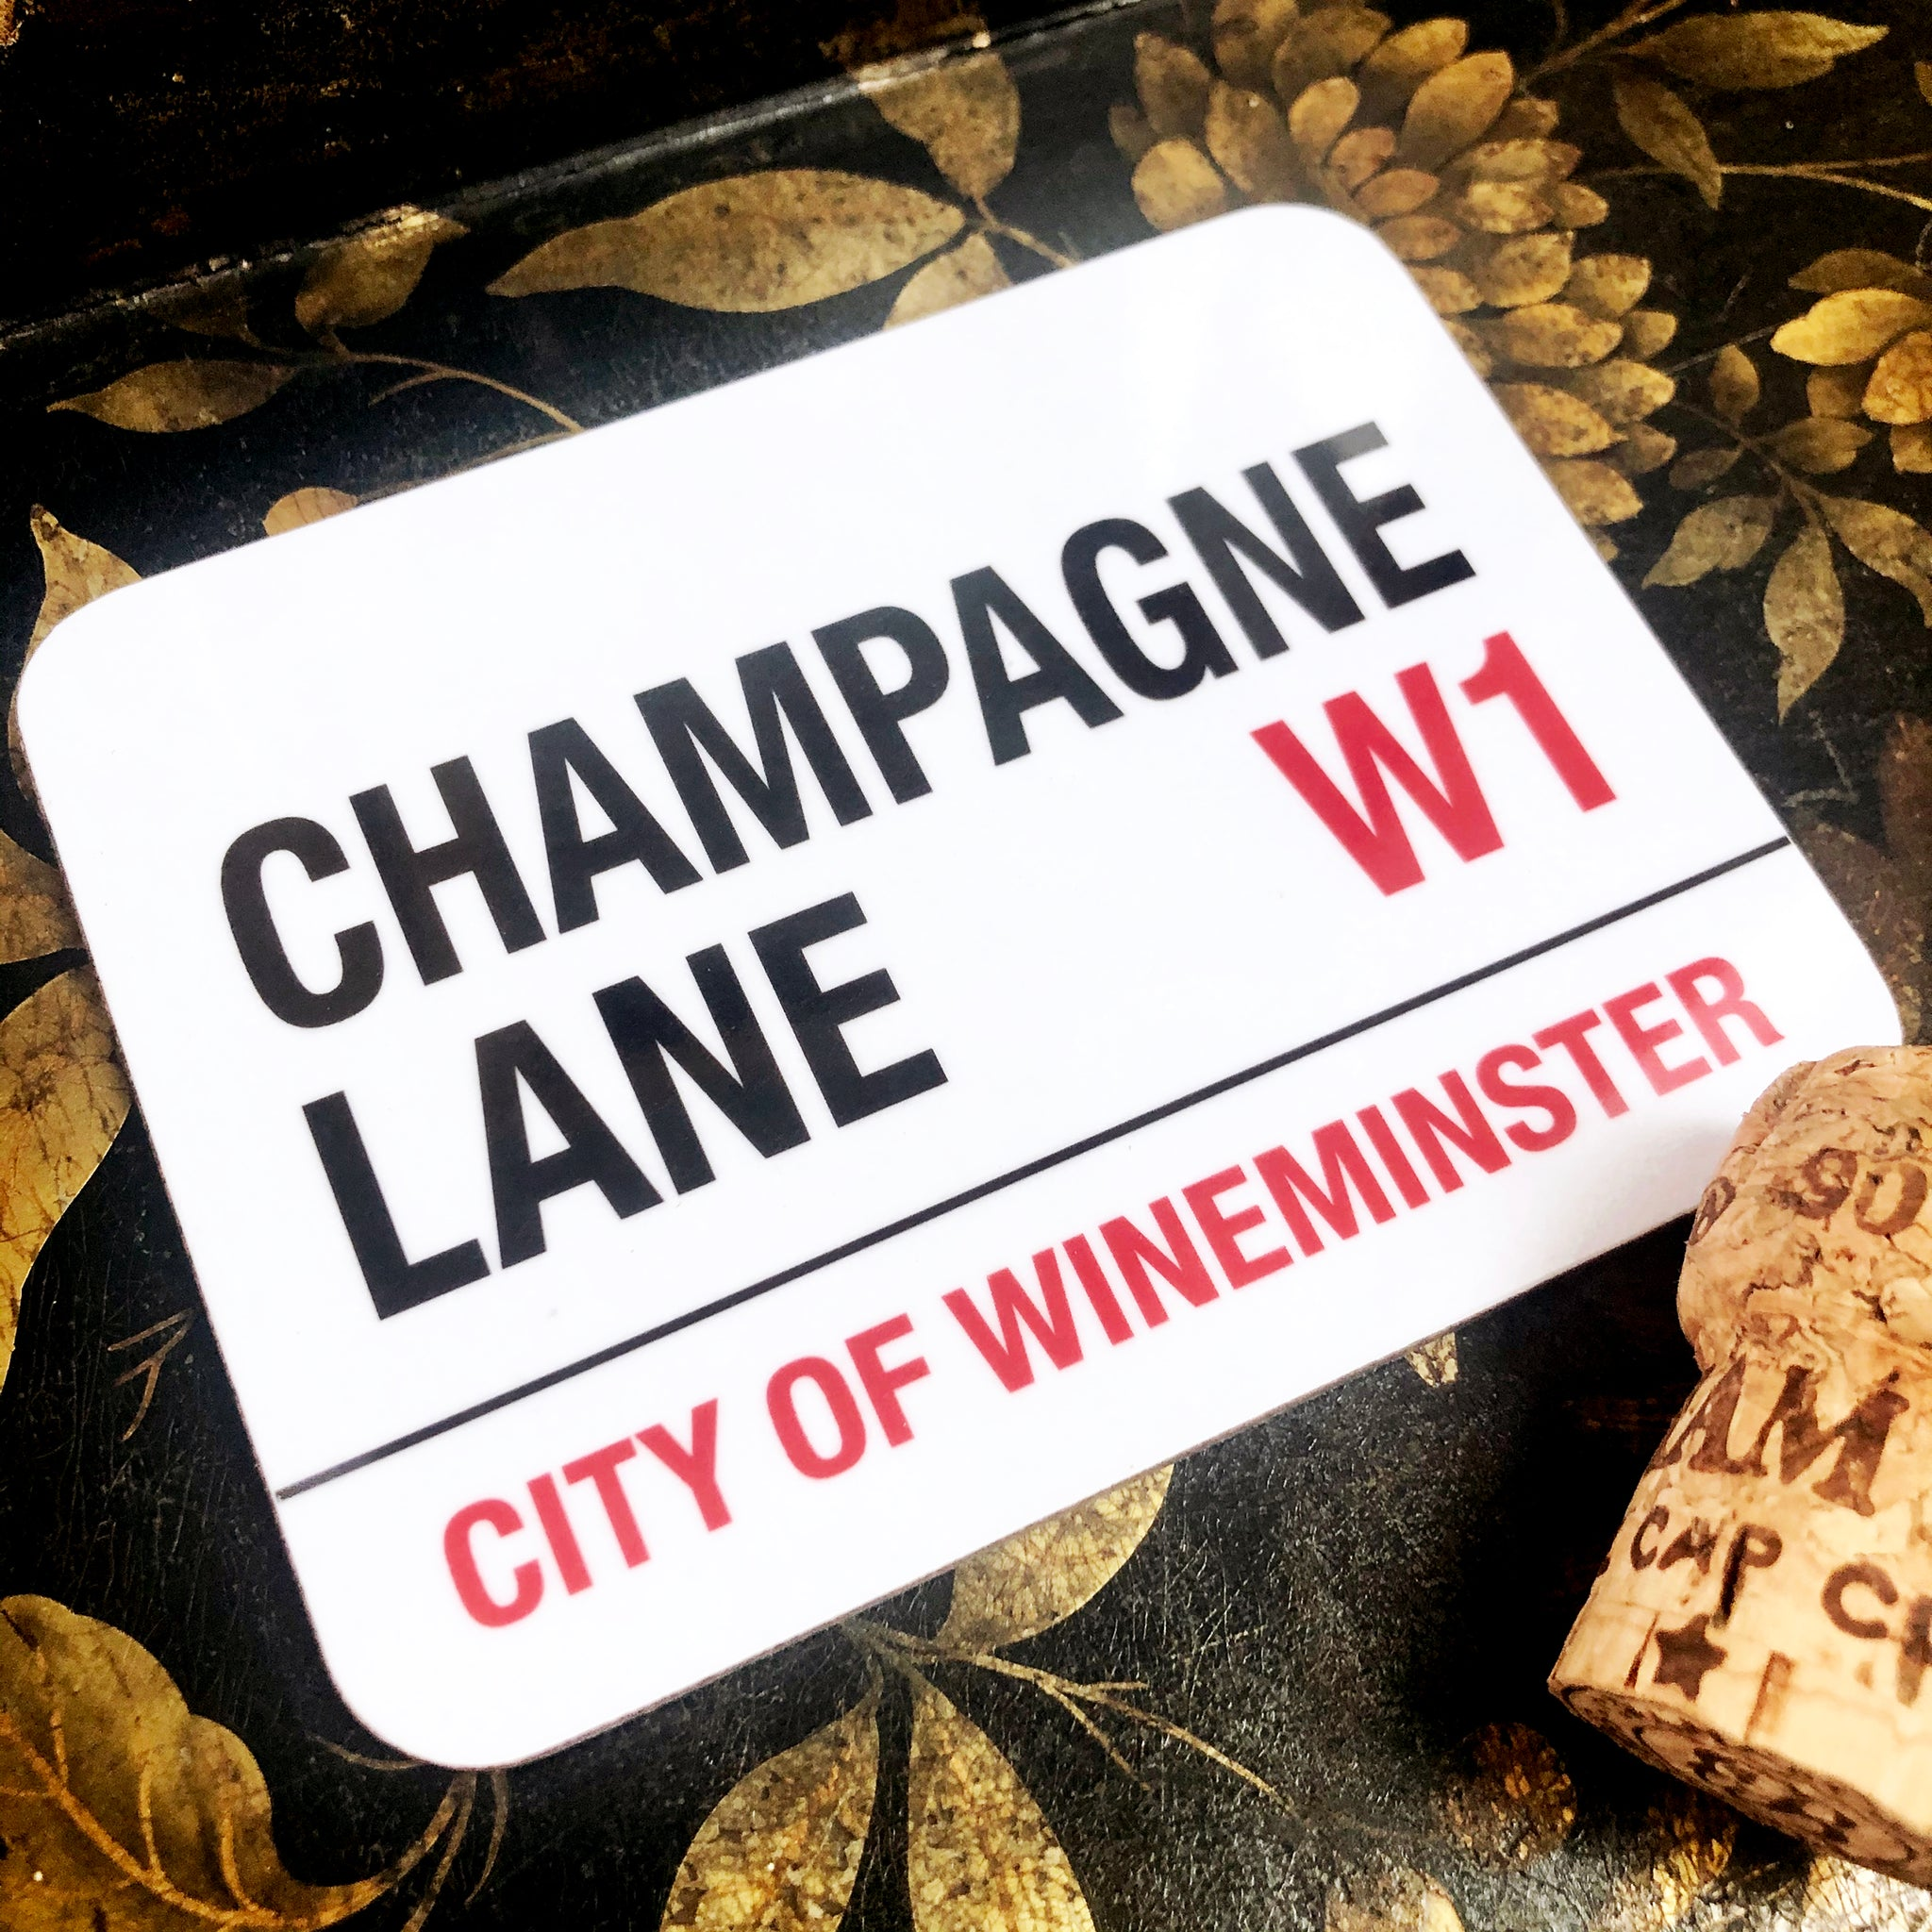 Champagne Lane Wineminster Coaster